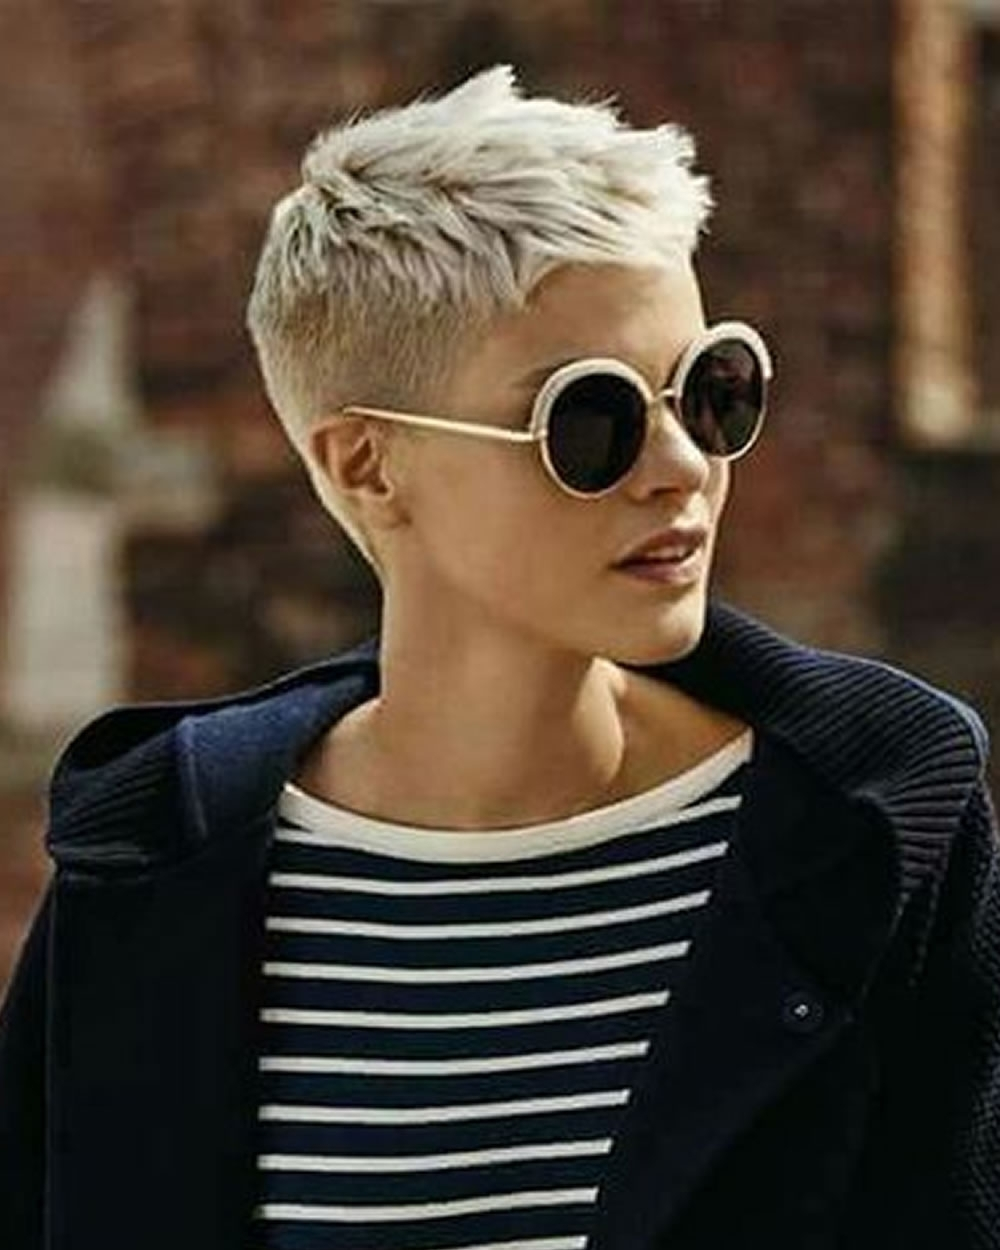 Super Very Short Pixie Haircuts & Hair Colors For 2018 2019 Throughout Newest Extremely Short Pixie Hairstyles (View 12 of 15)